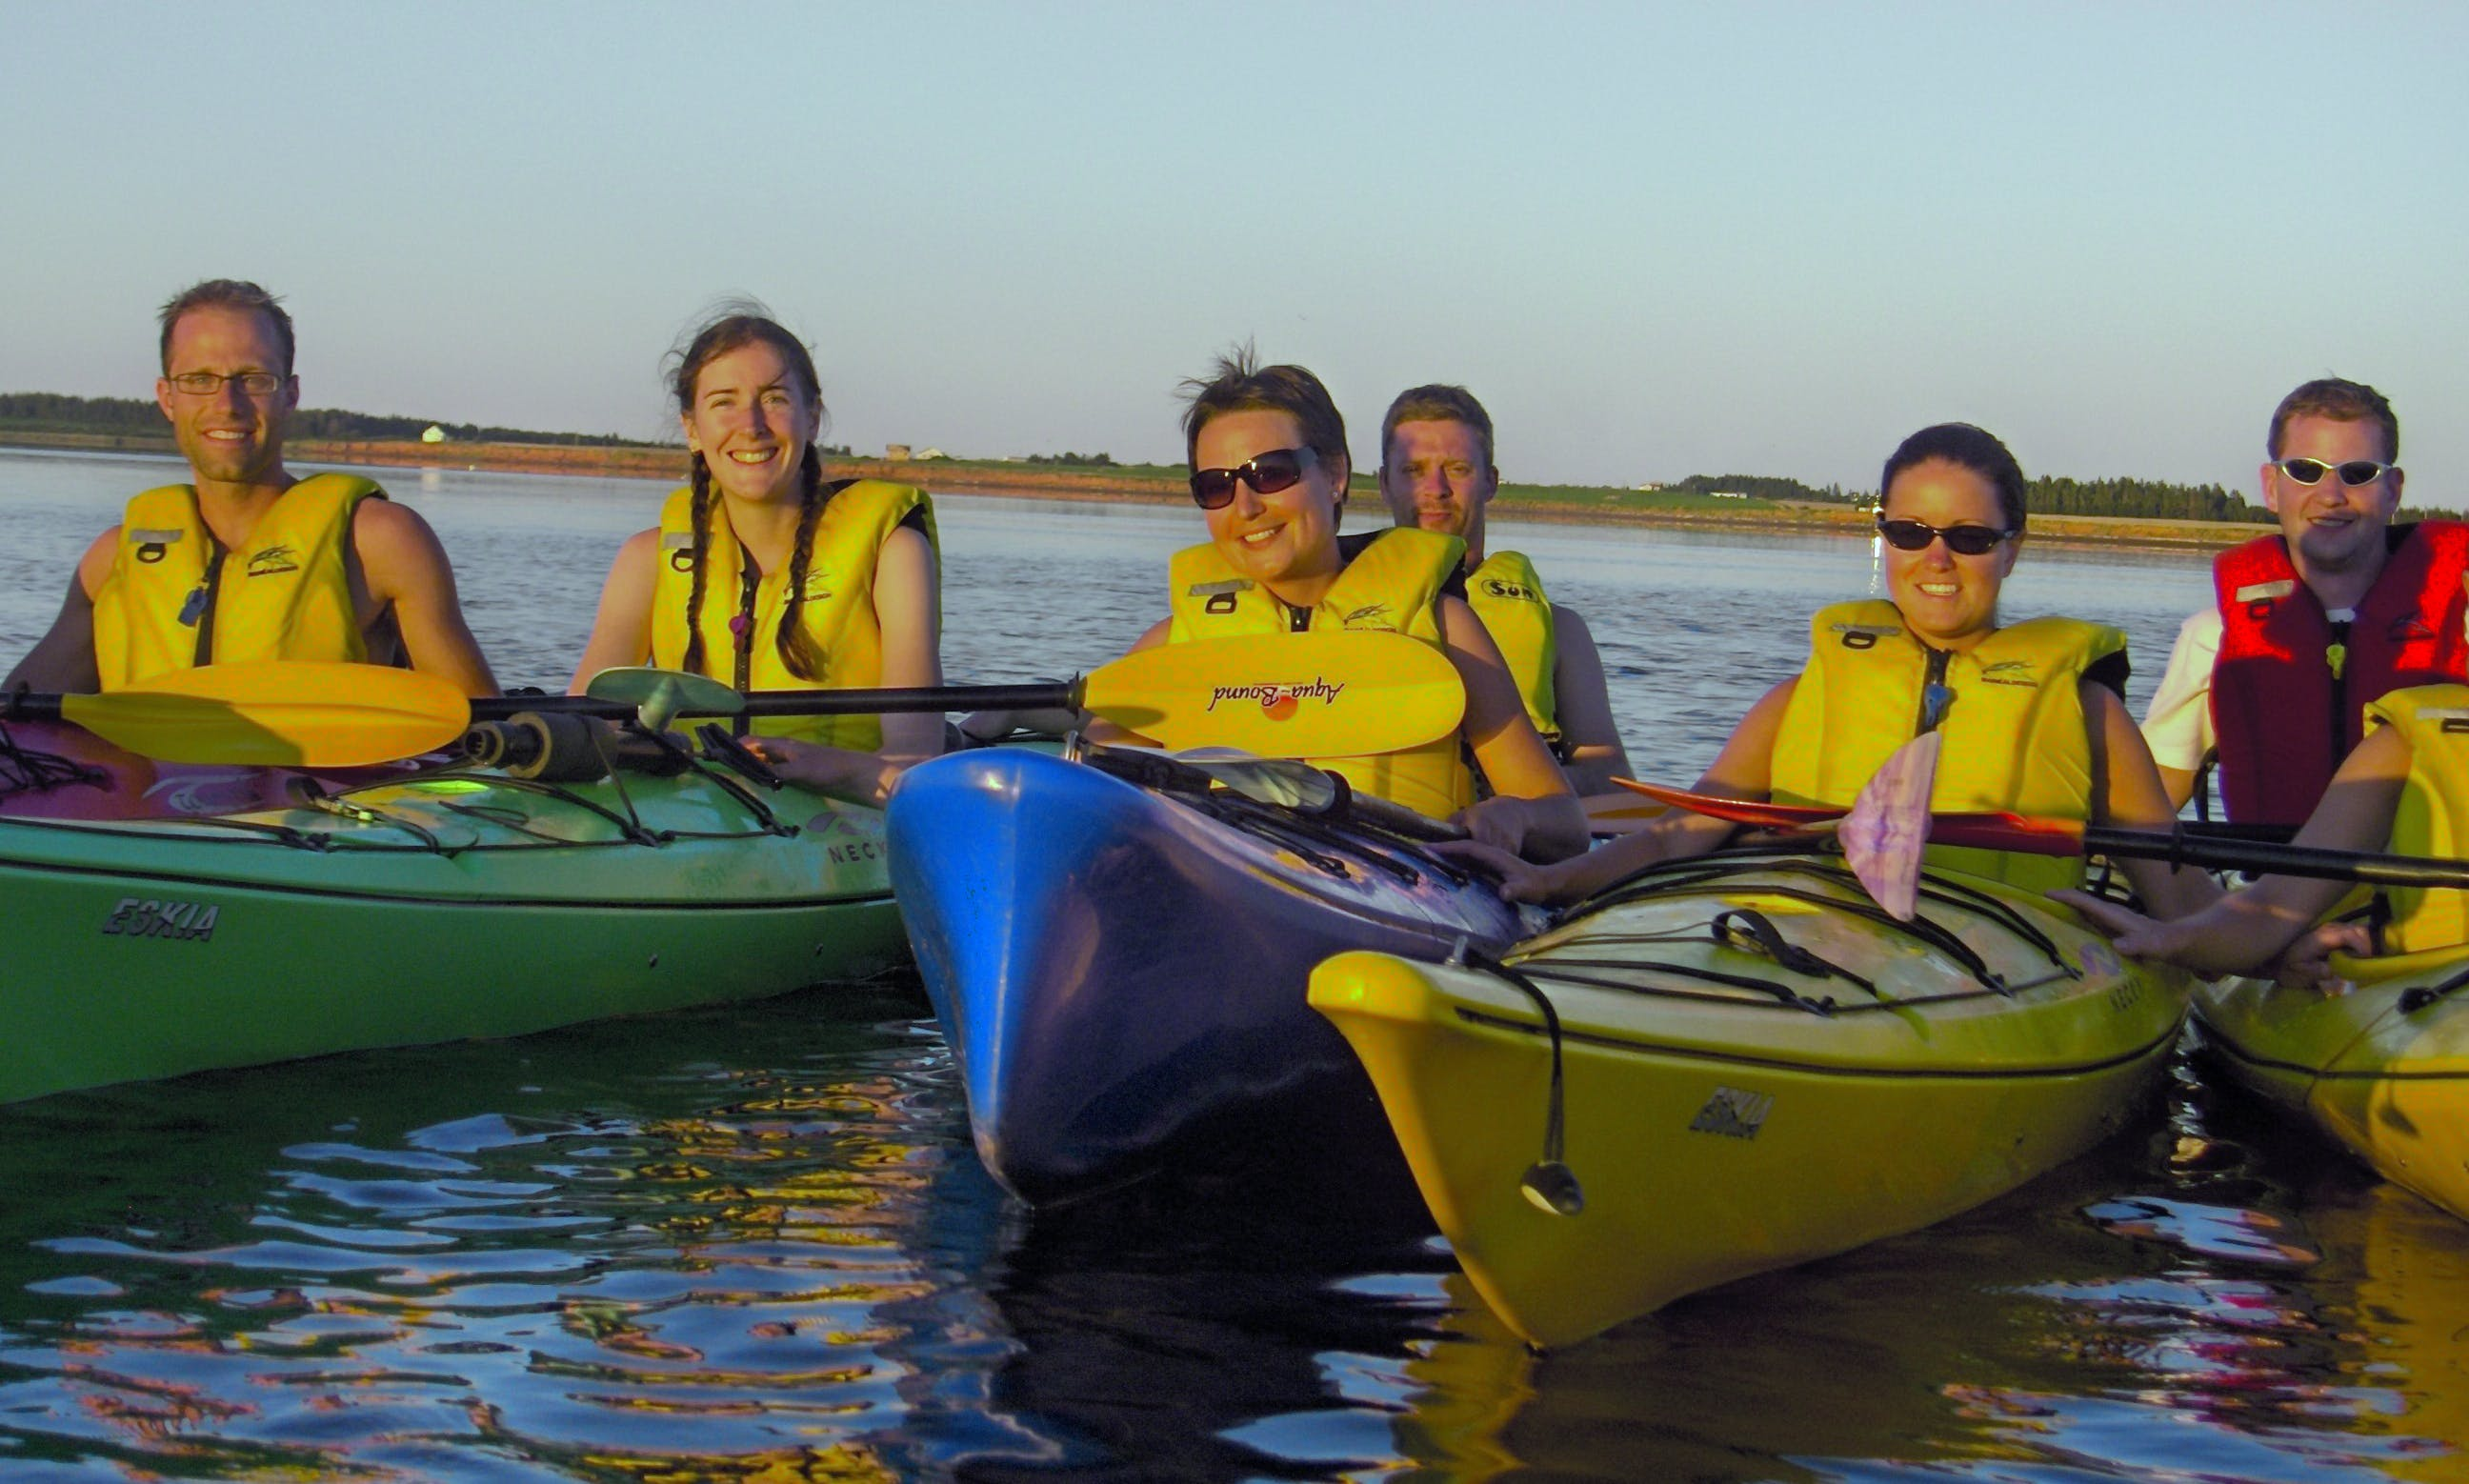 3 Hours to Full Day Guided Kayak Tour in Kensington, Canada